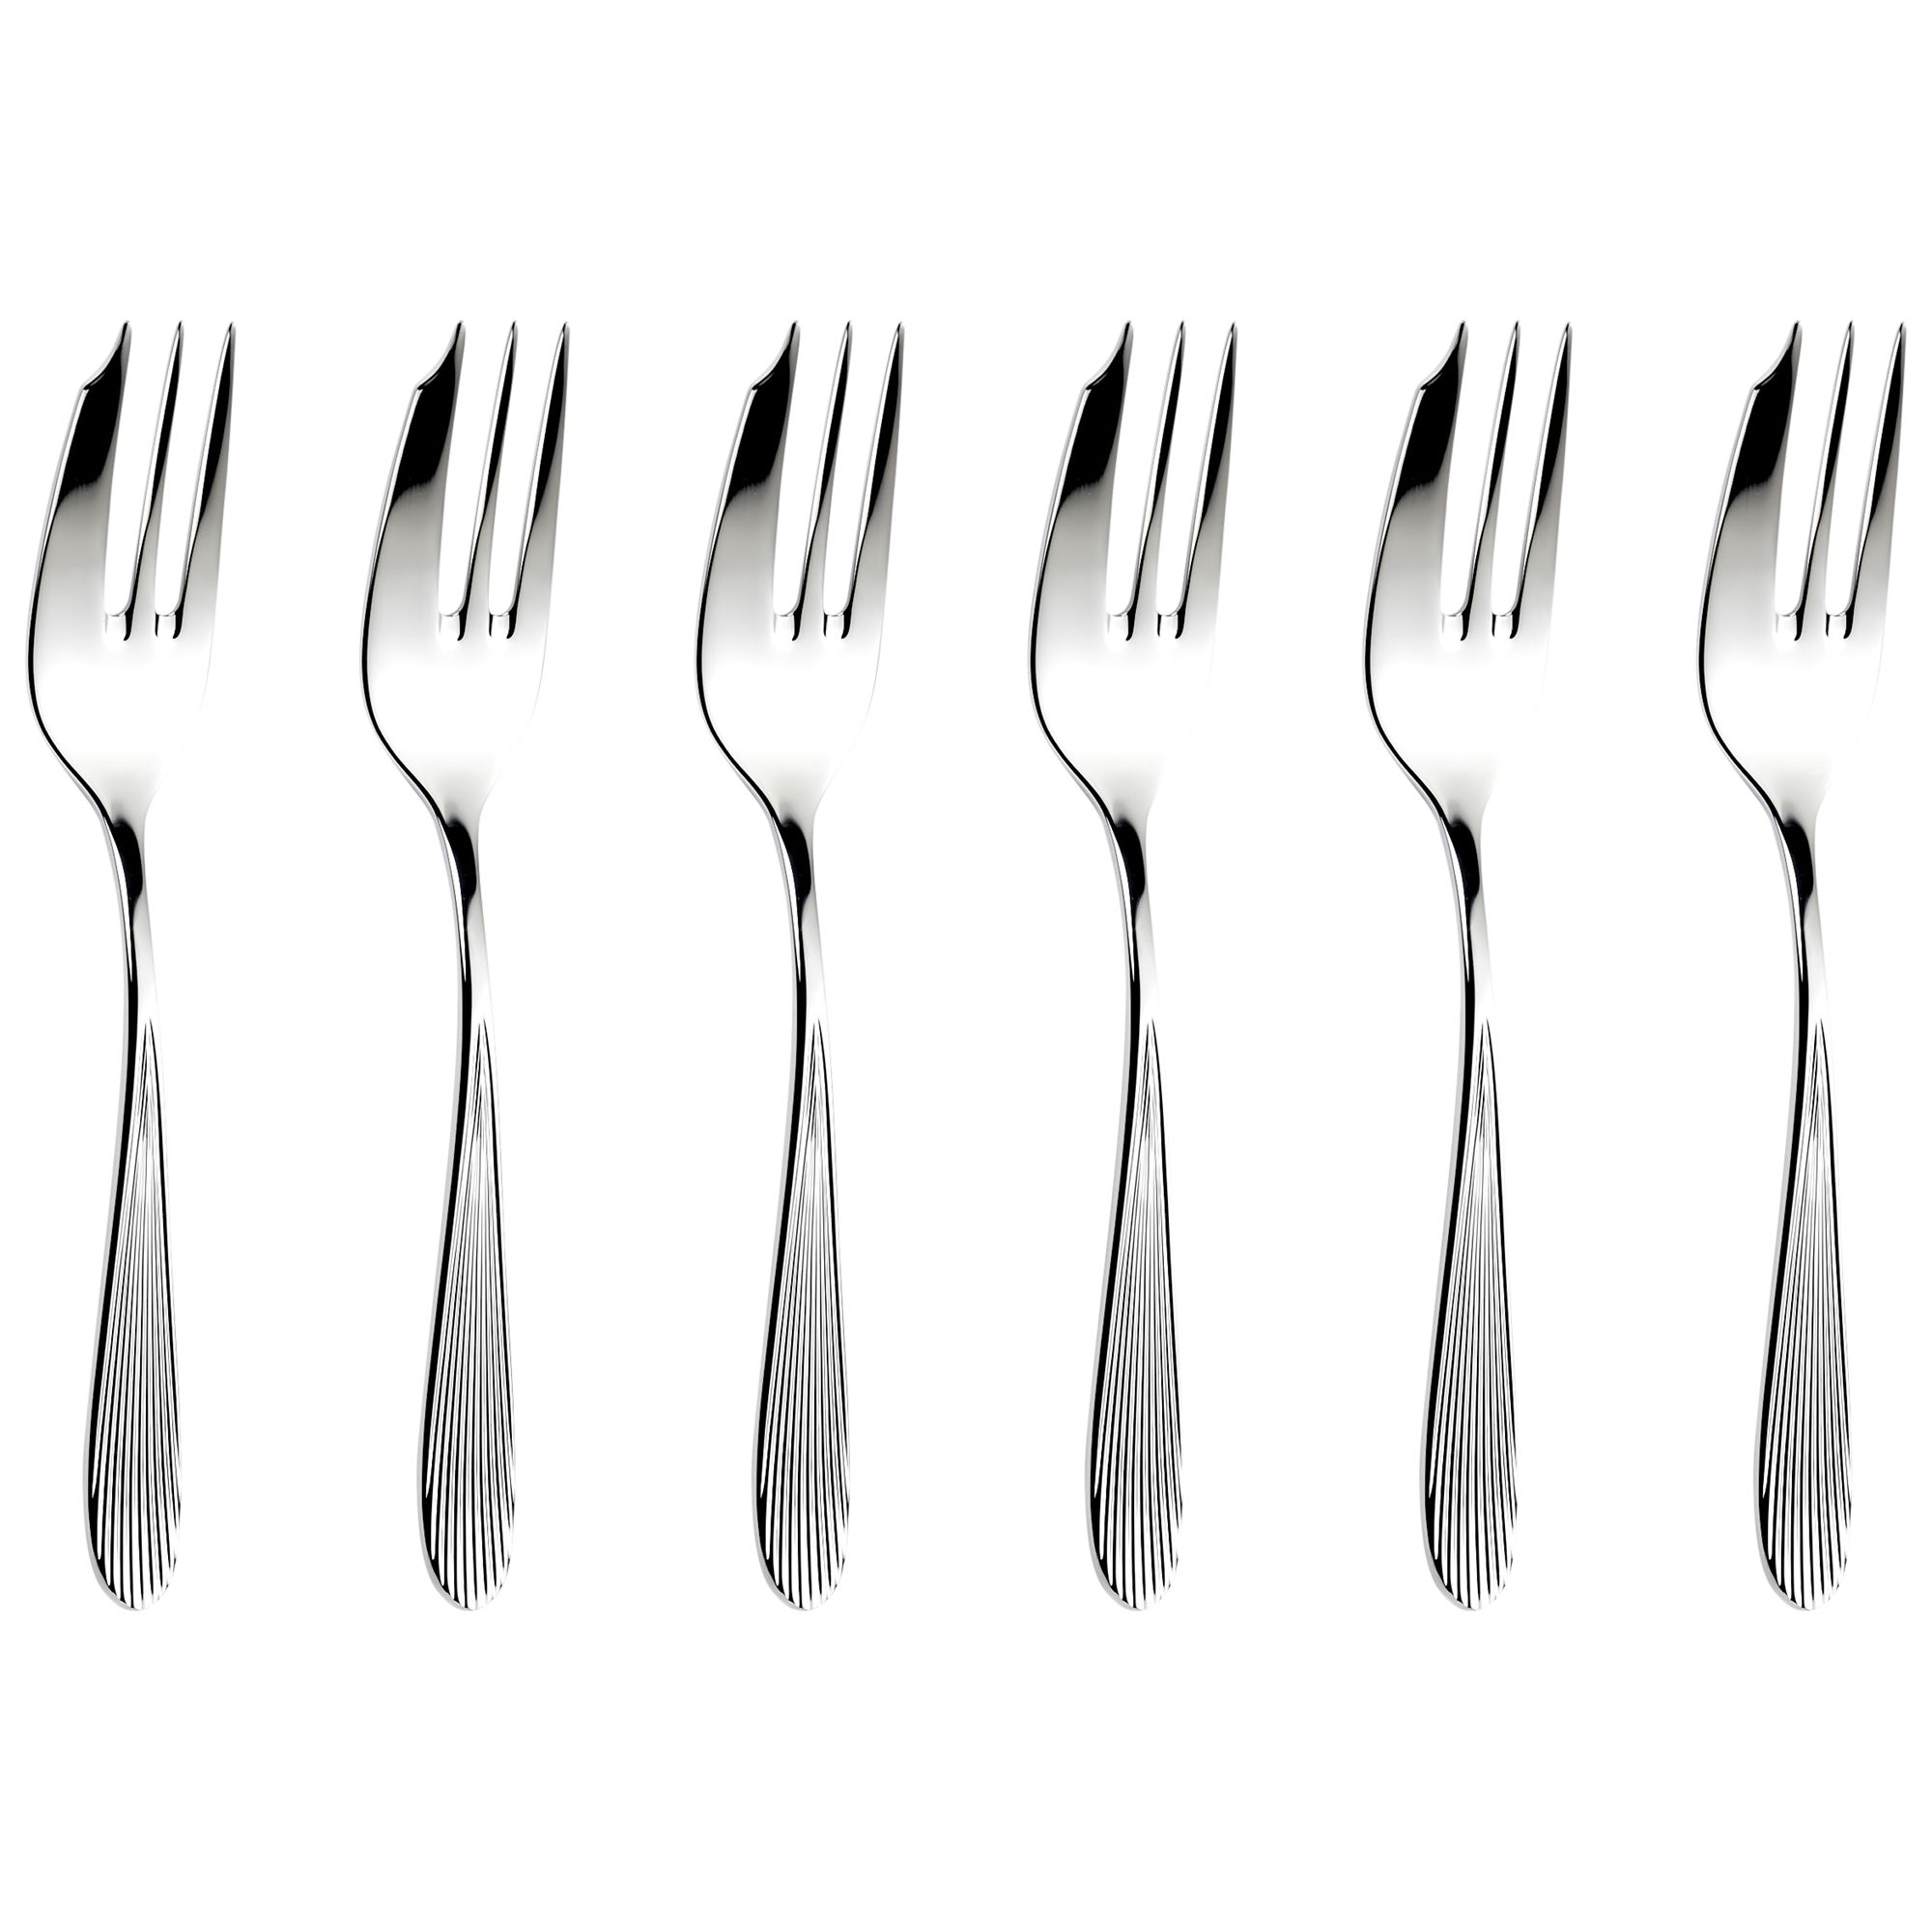 Sophie Conran for Arthur Price Sophie Conran for Arthur Price Dune Pastry Forks, Set of 6